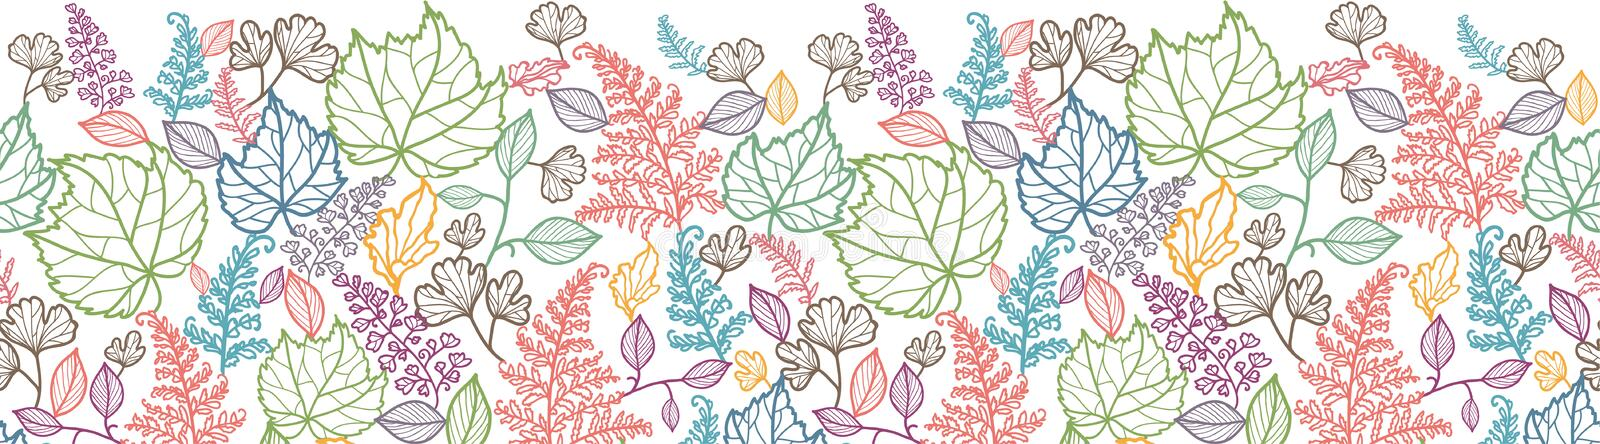 Linea Art Leaves Horizontal Seamless Pattern illustrazione vettoriale